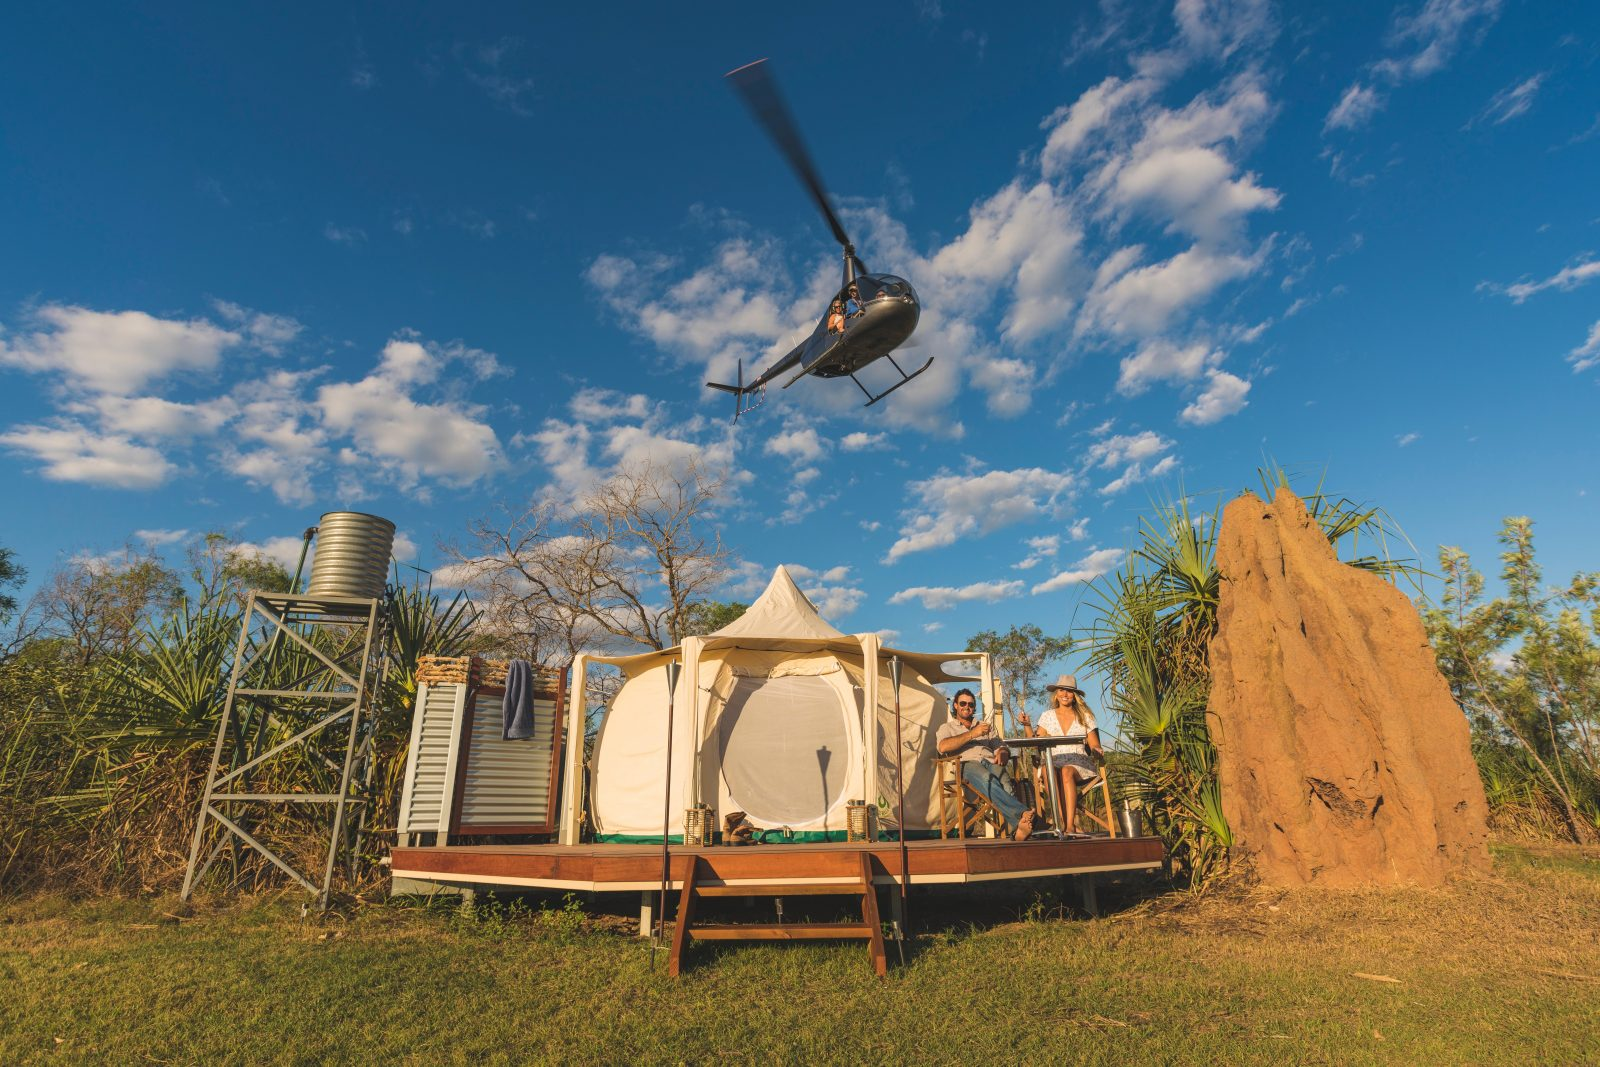 Enjoy a helicopter flight over the camp